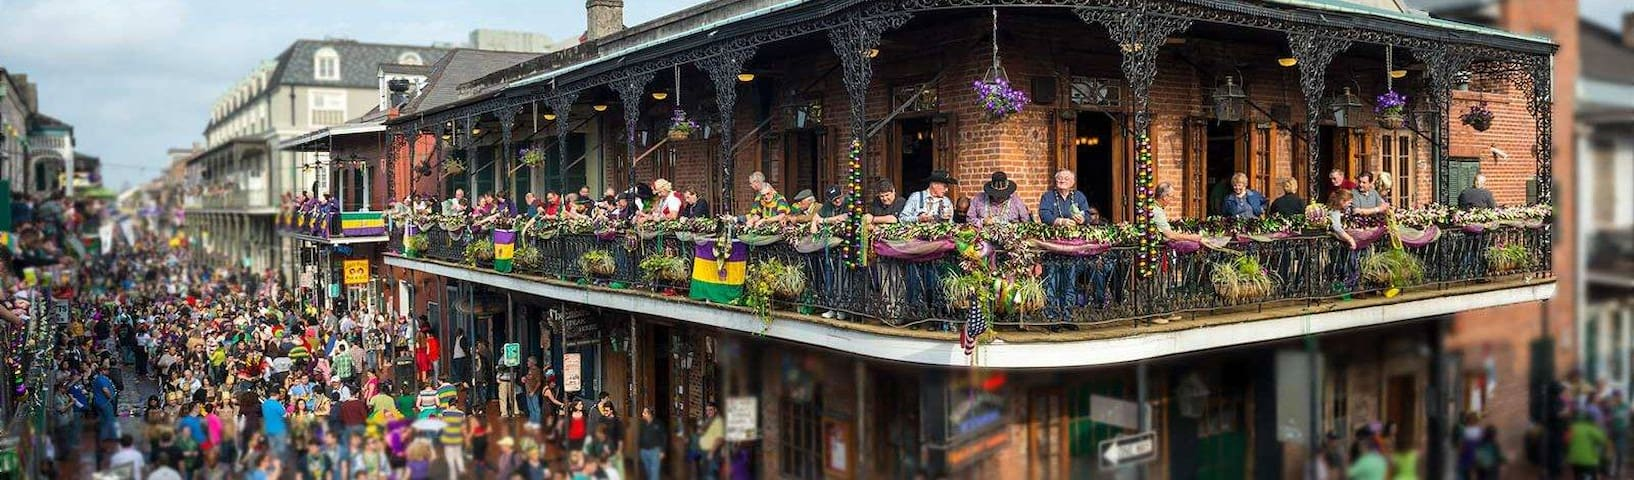 WHAT TO DO IN NOLA...